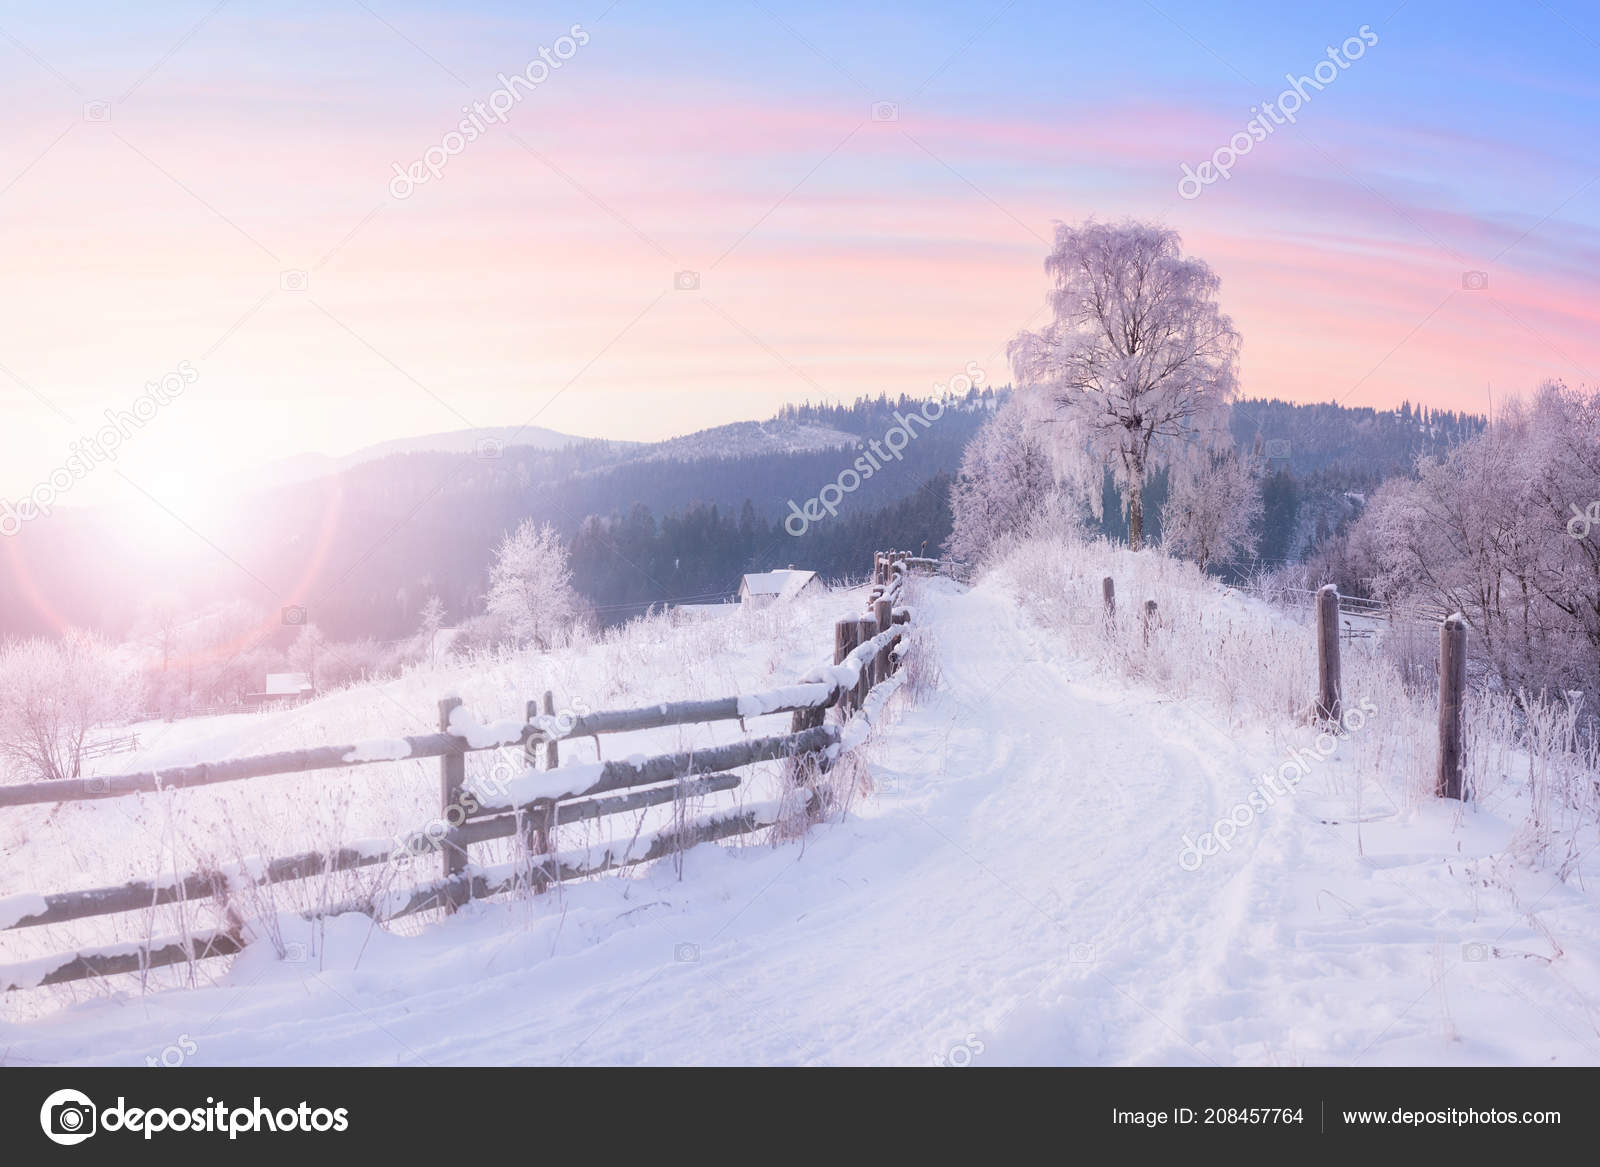 Wallpapers Beautiful Scenic Beautiful Winter Nature Landscape